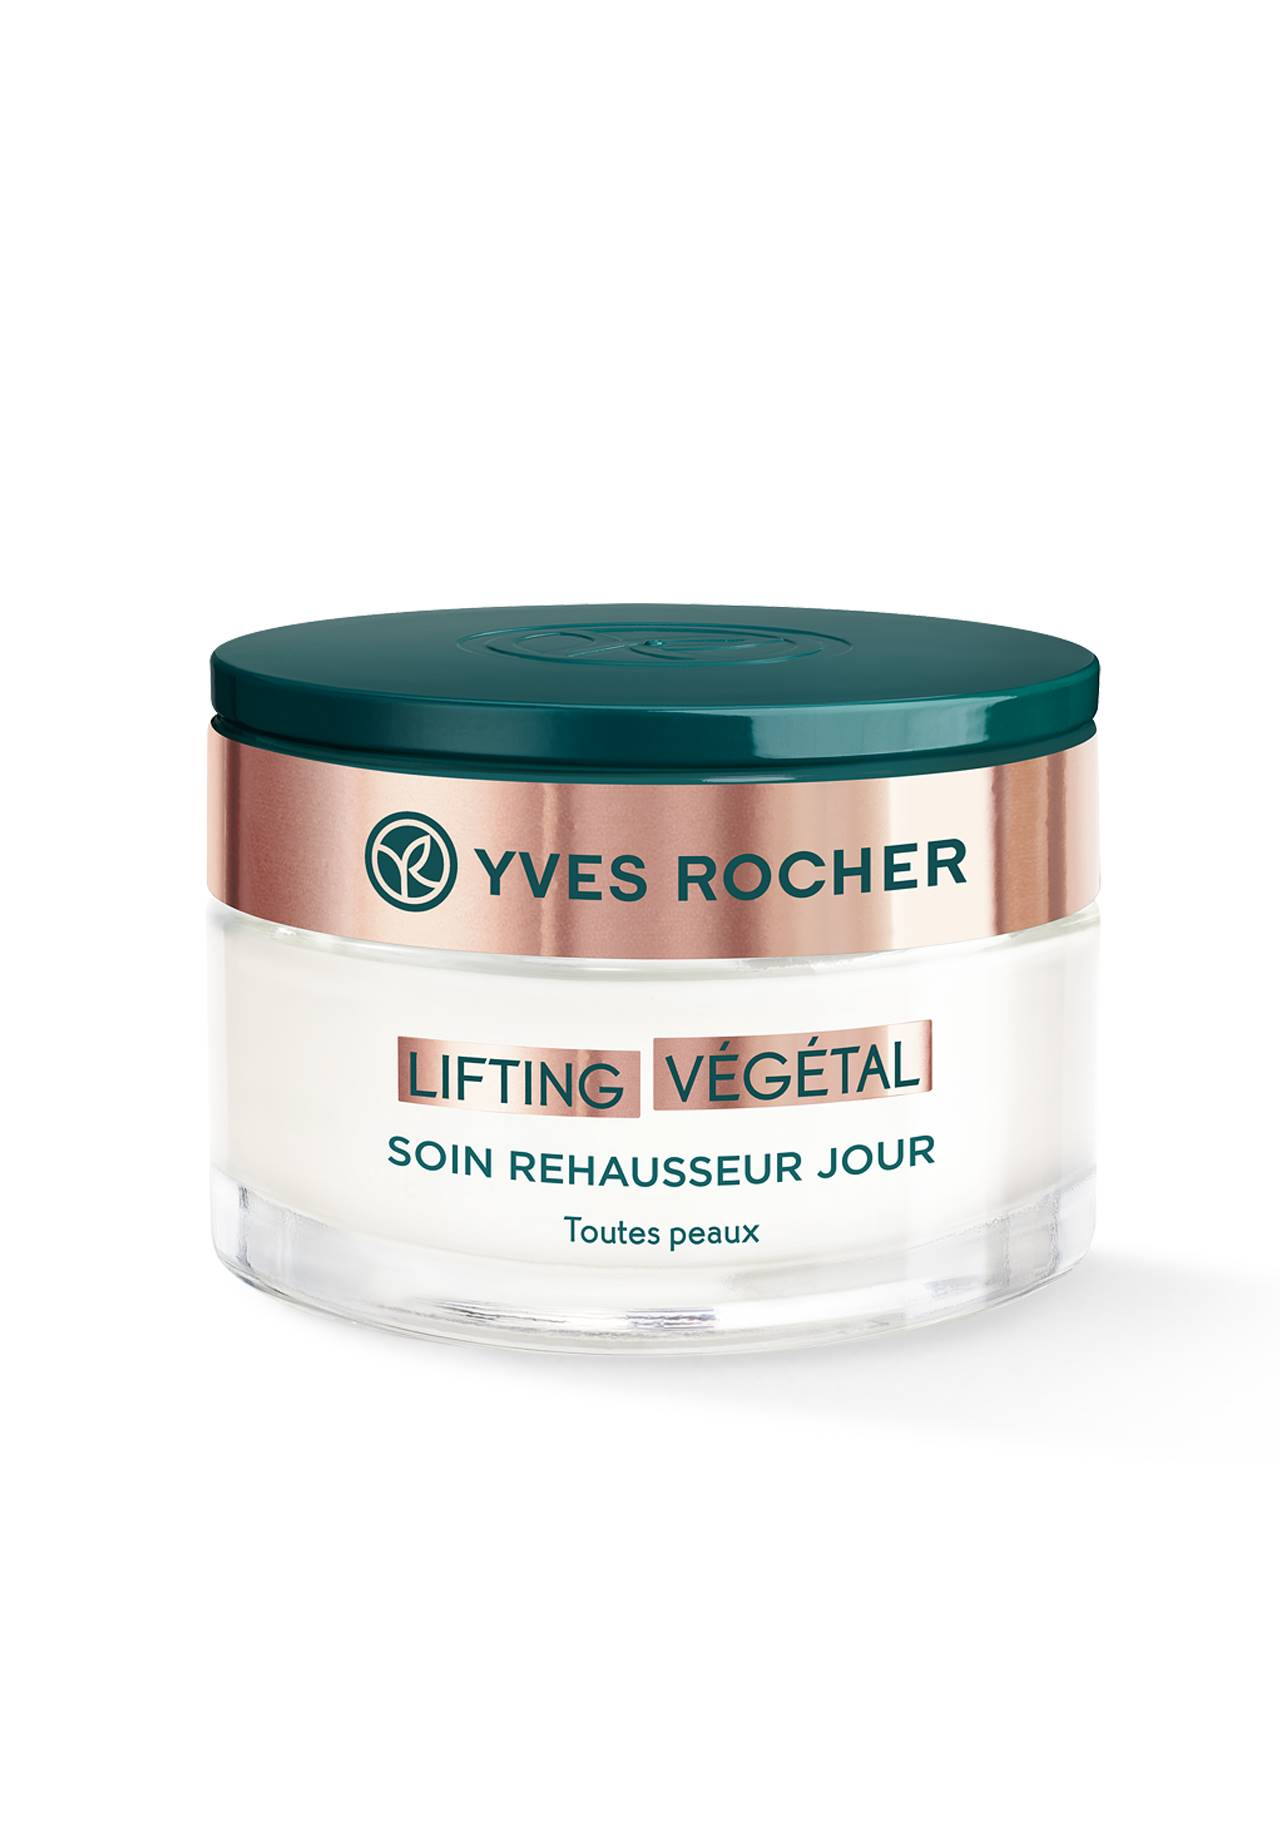 yves rocher lifting vegetal dia